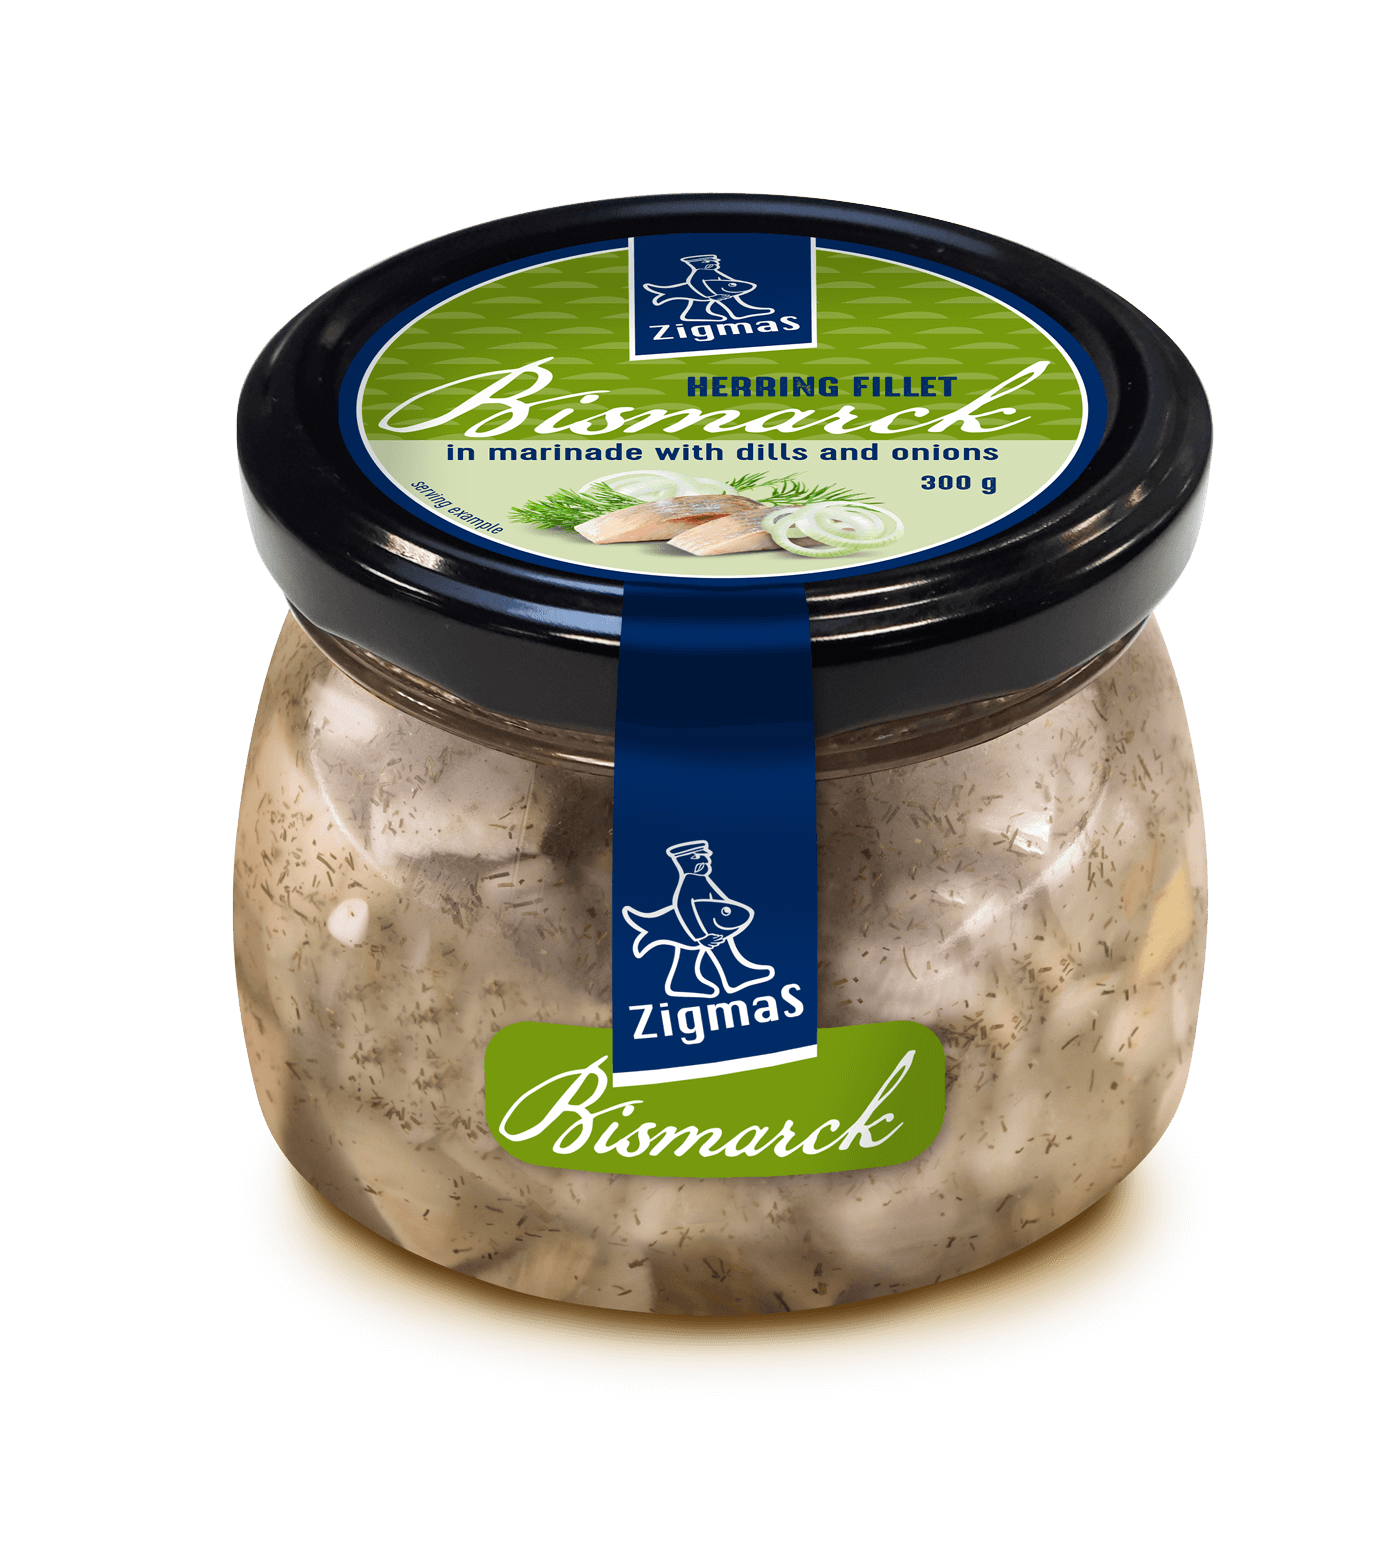 BISMARCK marinated herring fillet pieces in dill and onion marinade